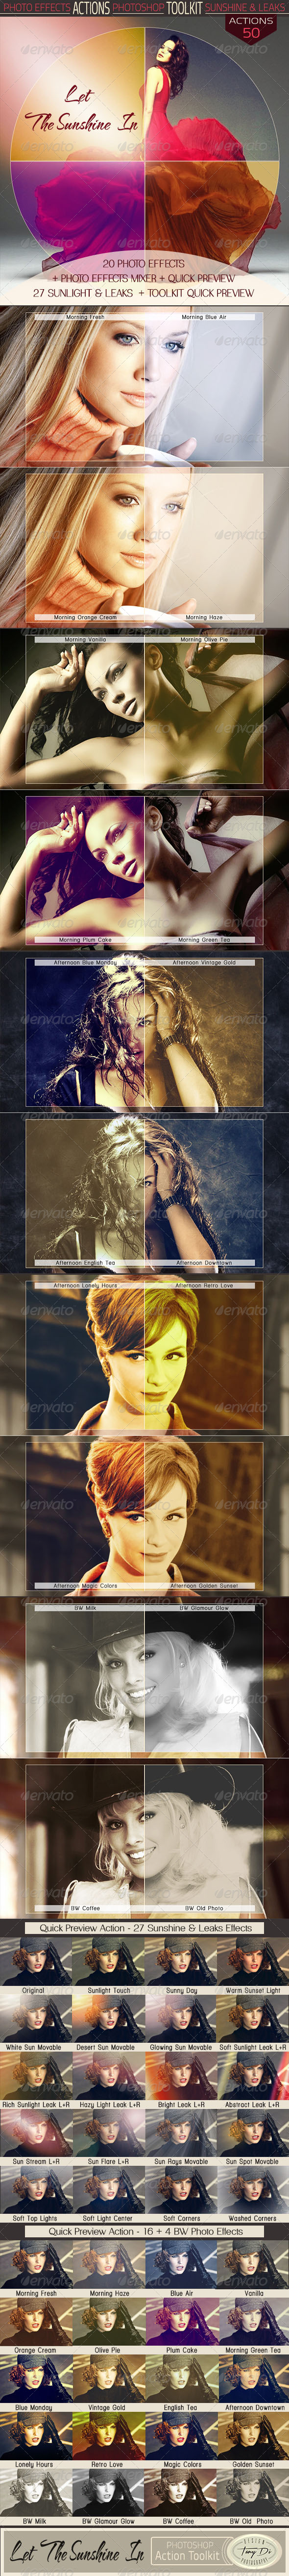 GraphicRiver Let The Sunshine In Action Toolkit 7444983